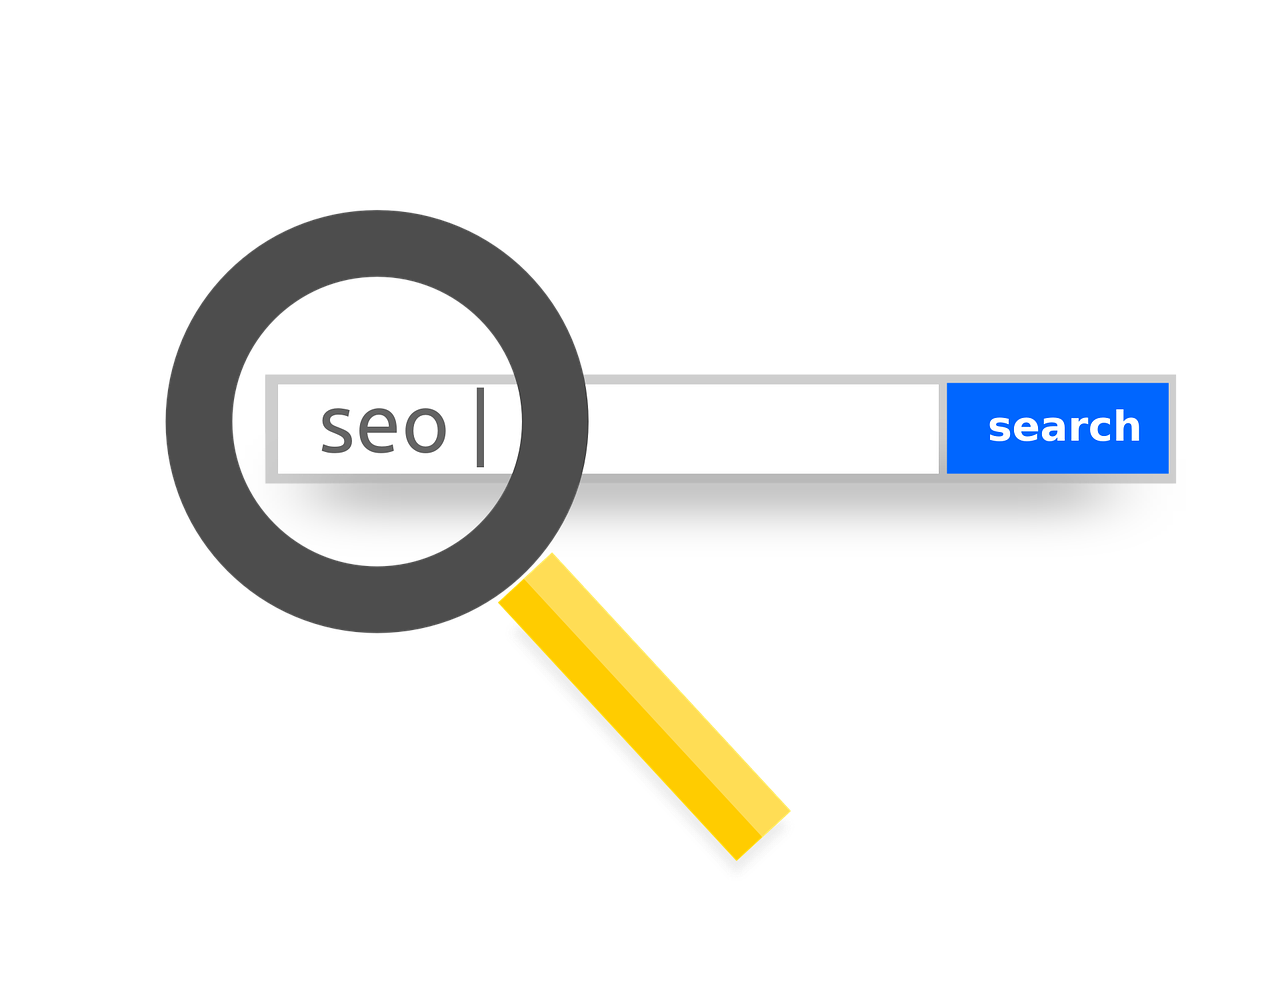 search engine optimization, seo SERVICES